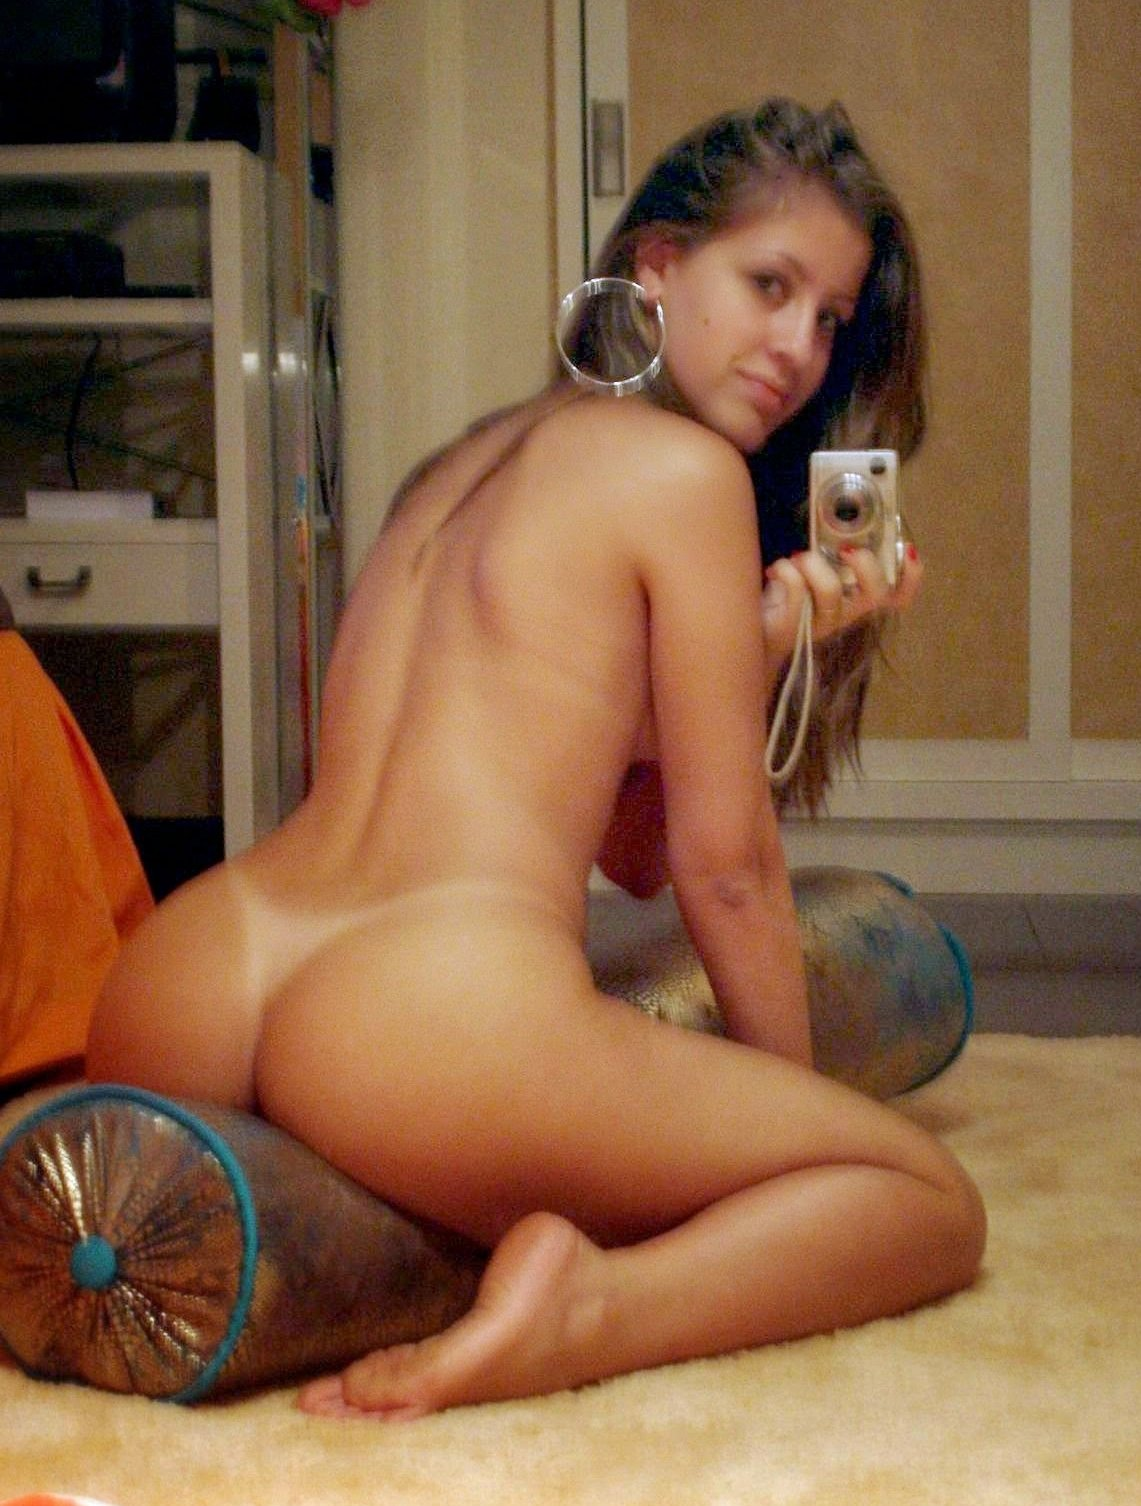 Big naked butts twerking #1